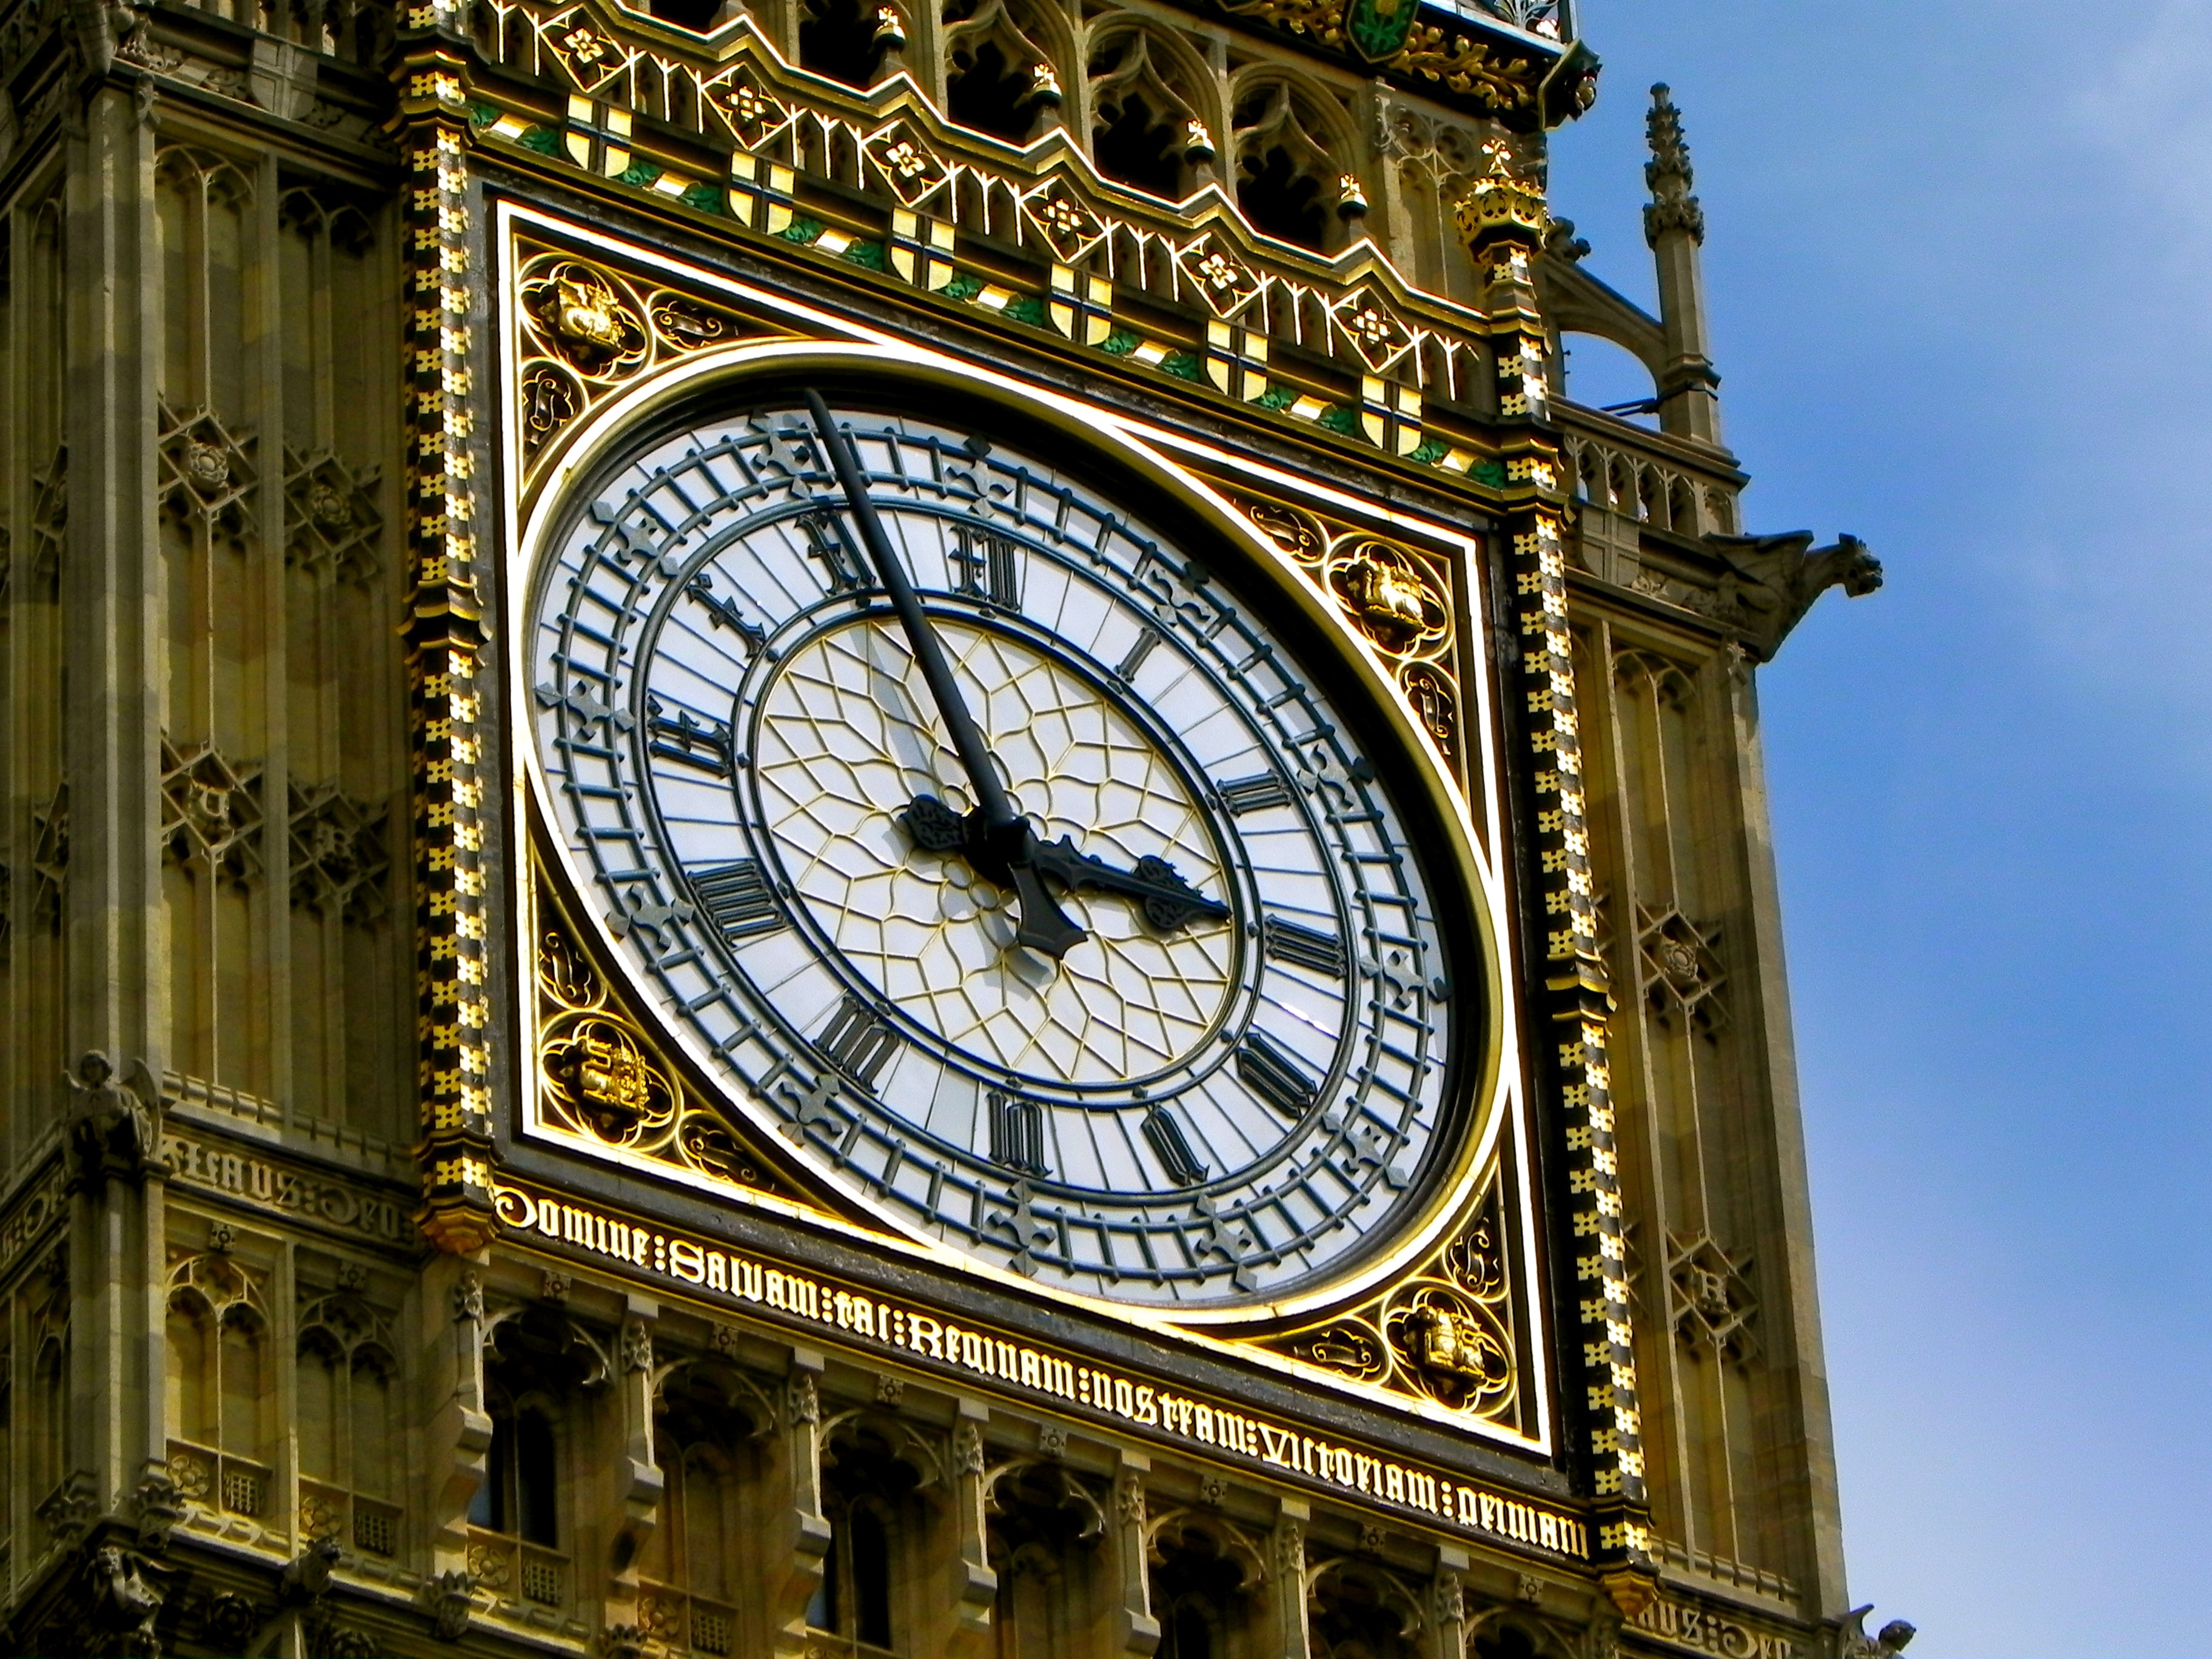 A close-up detail shot of Big Ben in Westminster, London